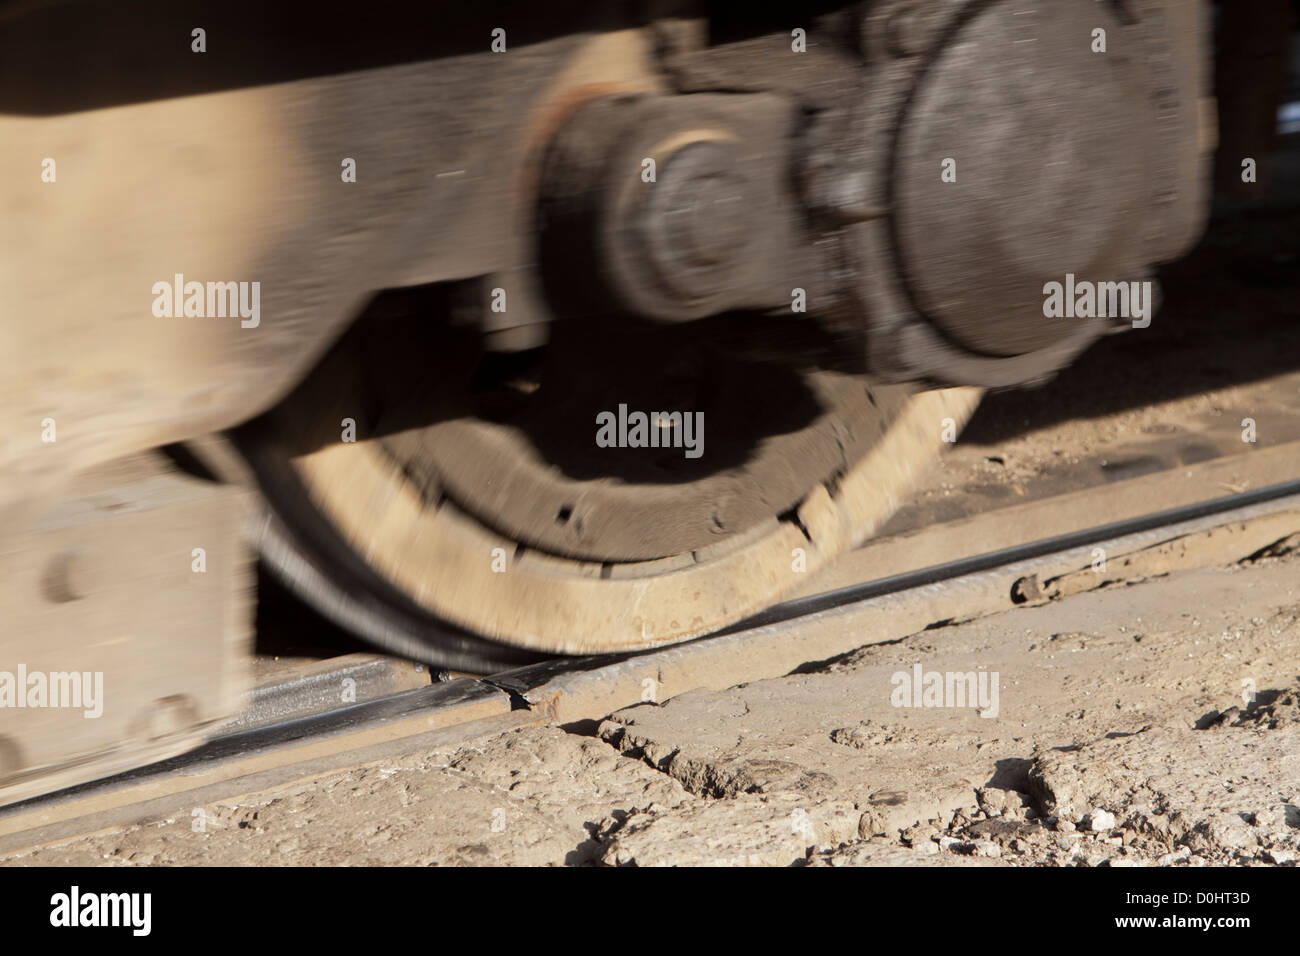 Unsafe tramway system in Sofia: tram wheel rolling over a broken rail. - Stock Image